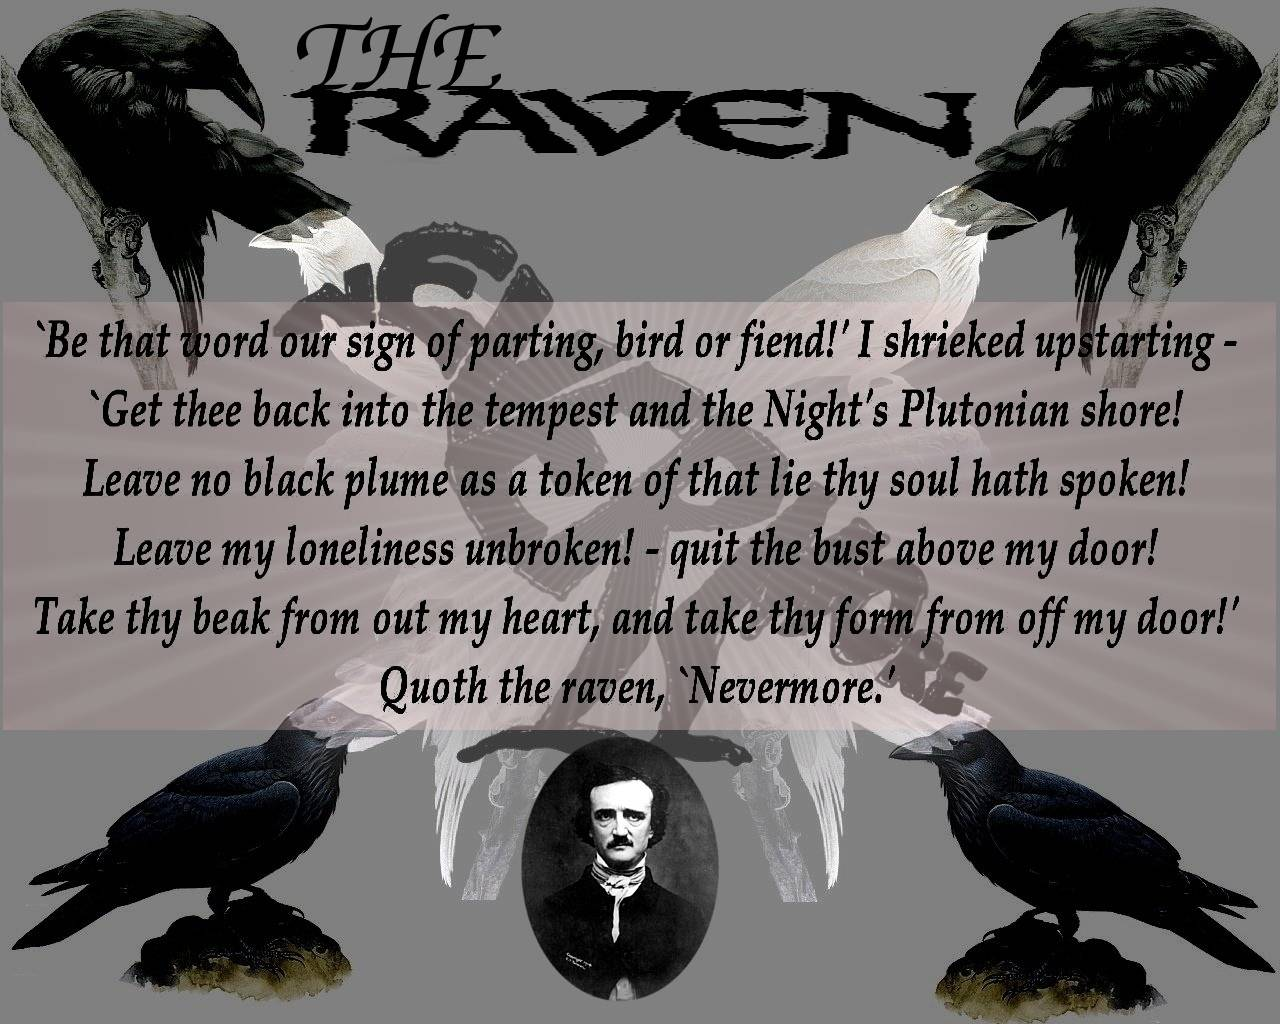 The Raven Wallpaper 2 Wallpaper for The Raven The Raven is a 1280x1024